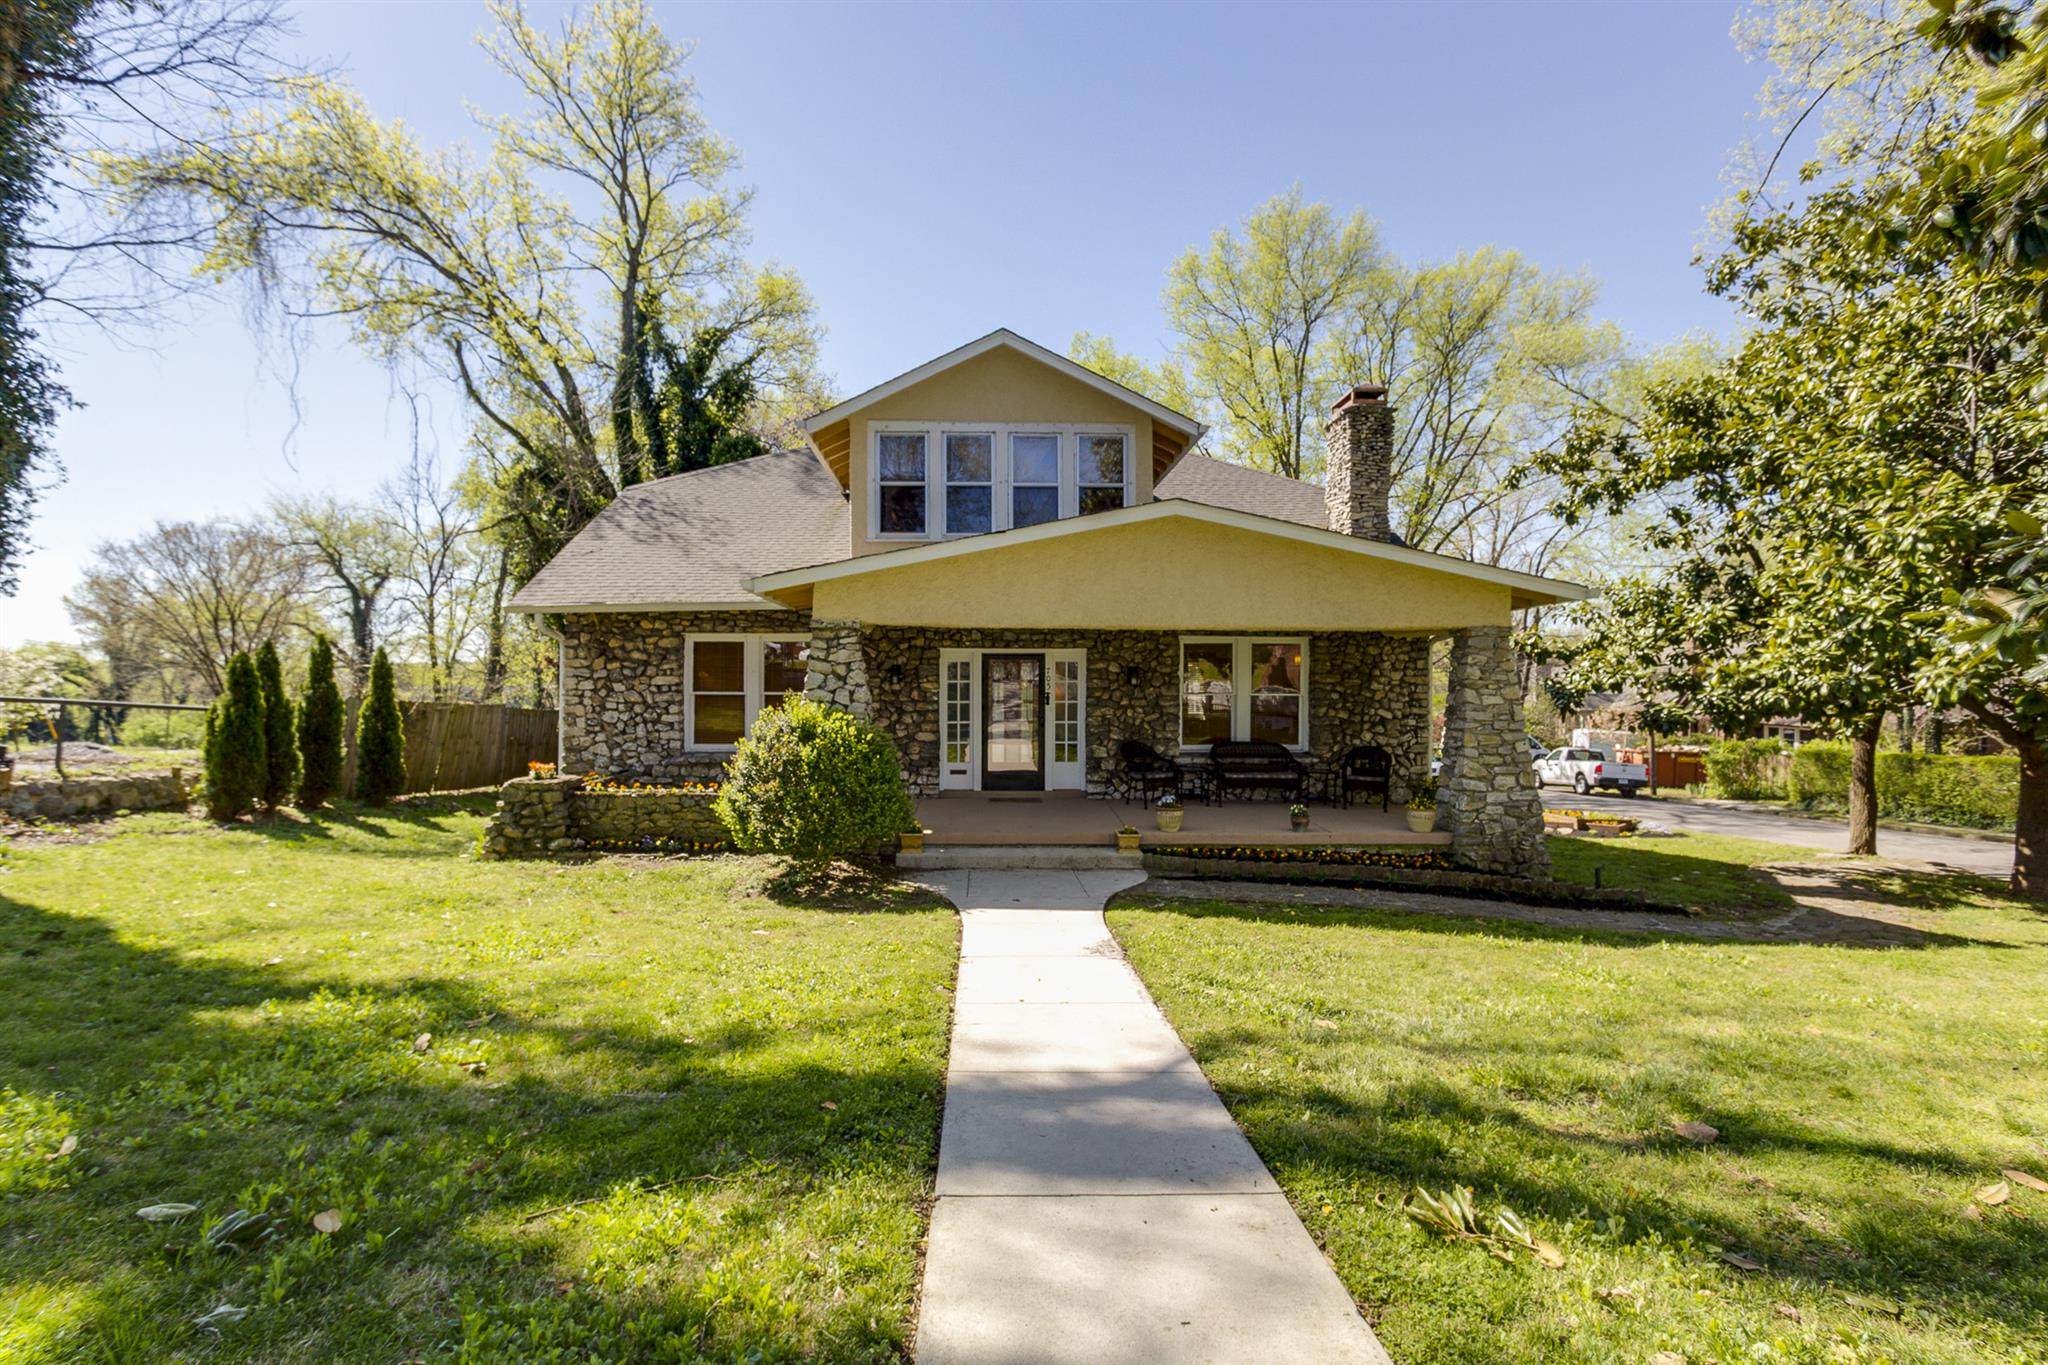 705 Trotwood Ave, Columbia, TN 38401